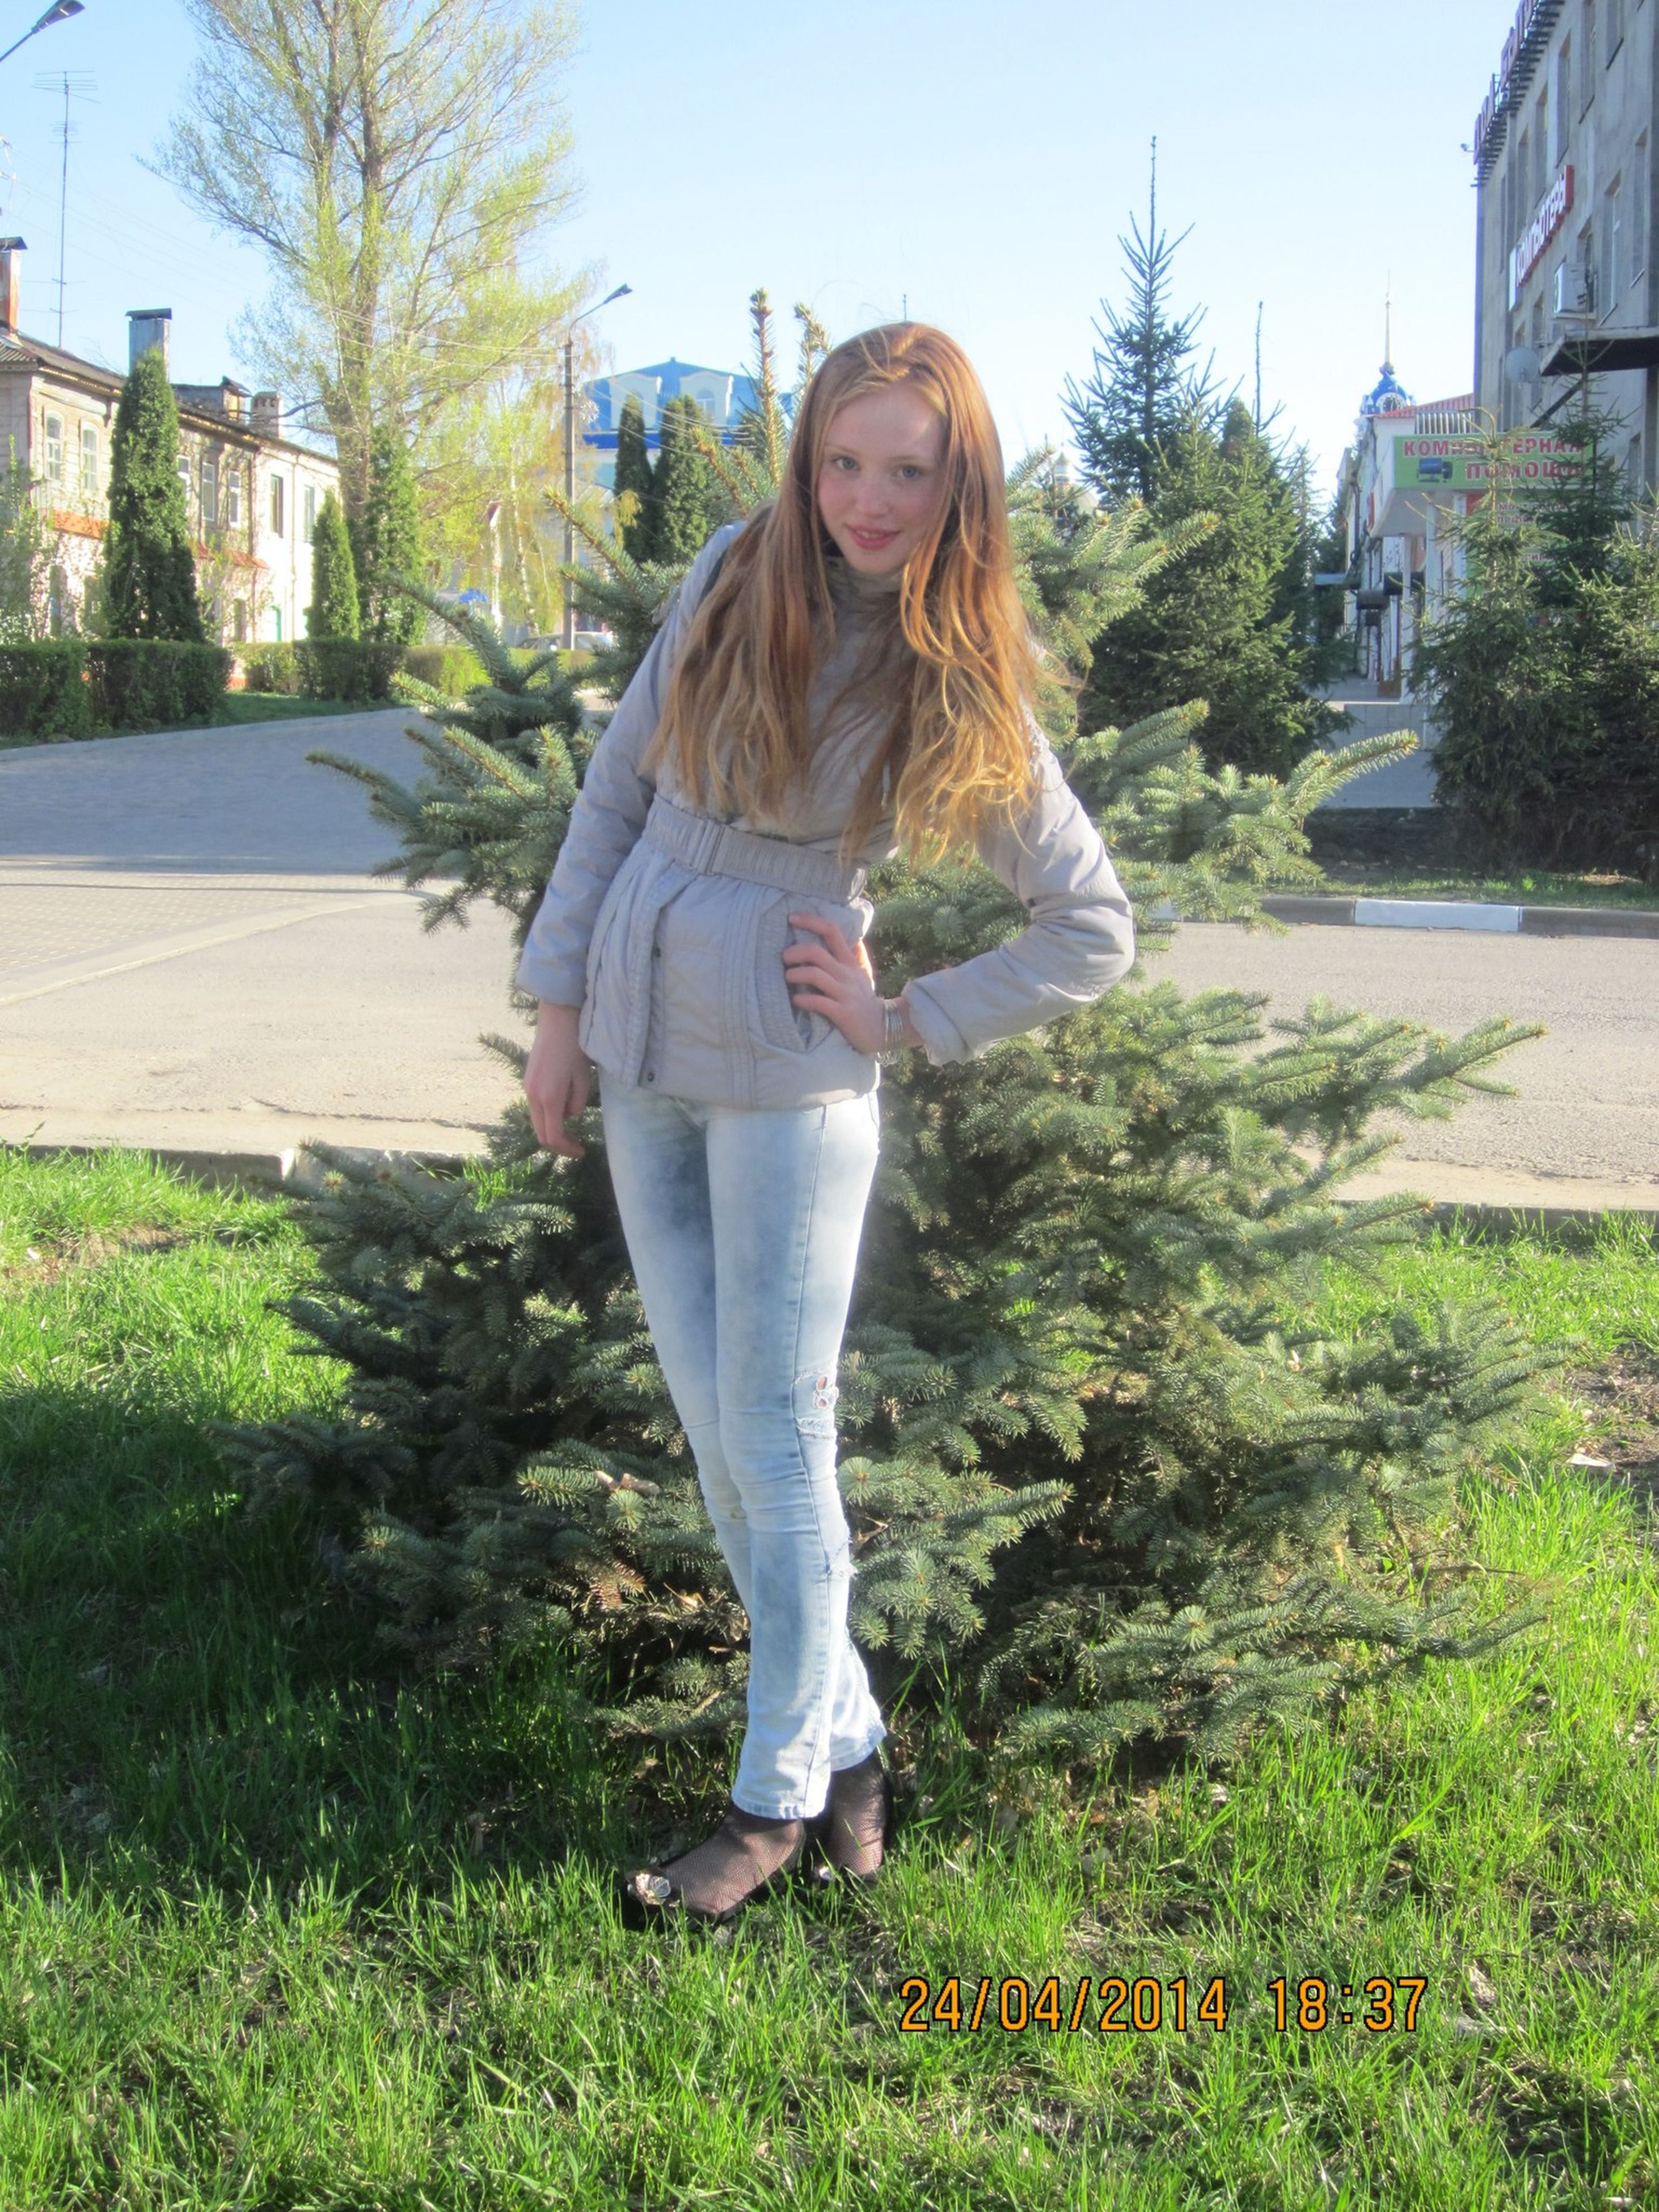 young adult, person, casual clothing, grass, young women, lifestyles, standing, full length, front view, portrait, leisure activity, looking at camera, long hair, building exterior, tree, built structure, sunglasses